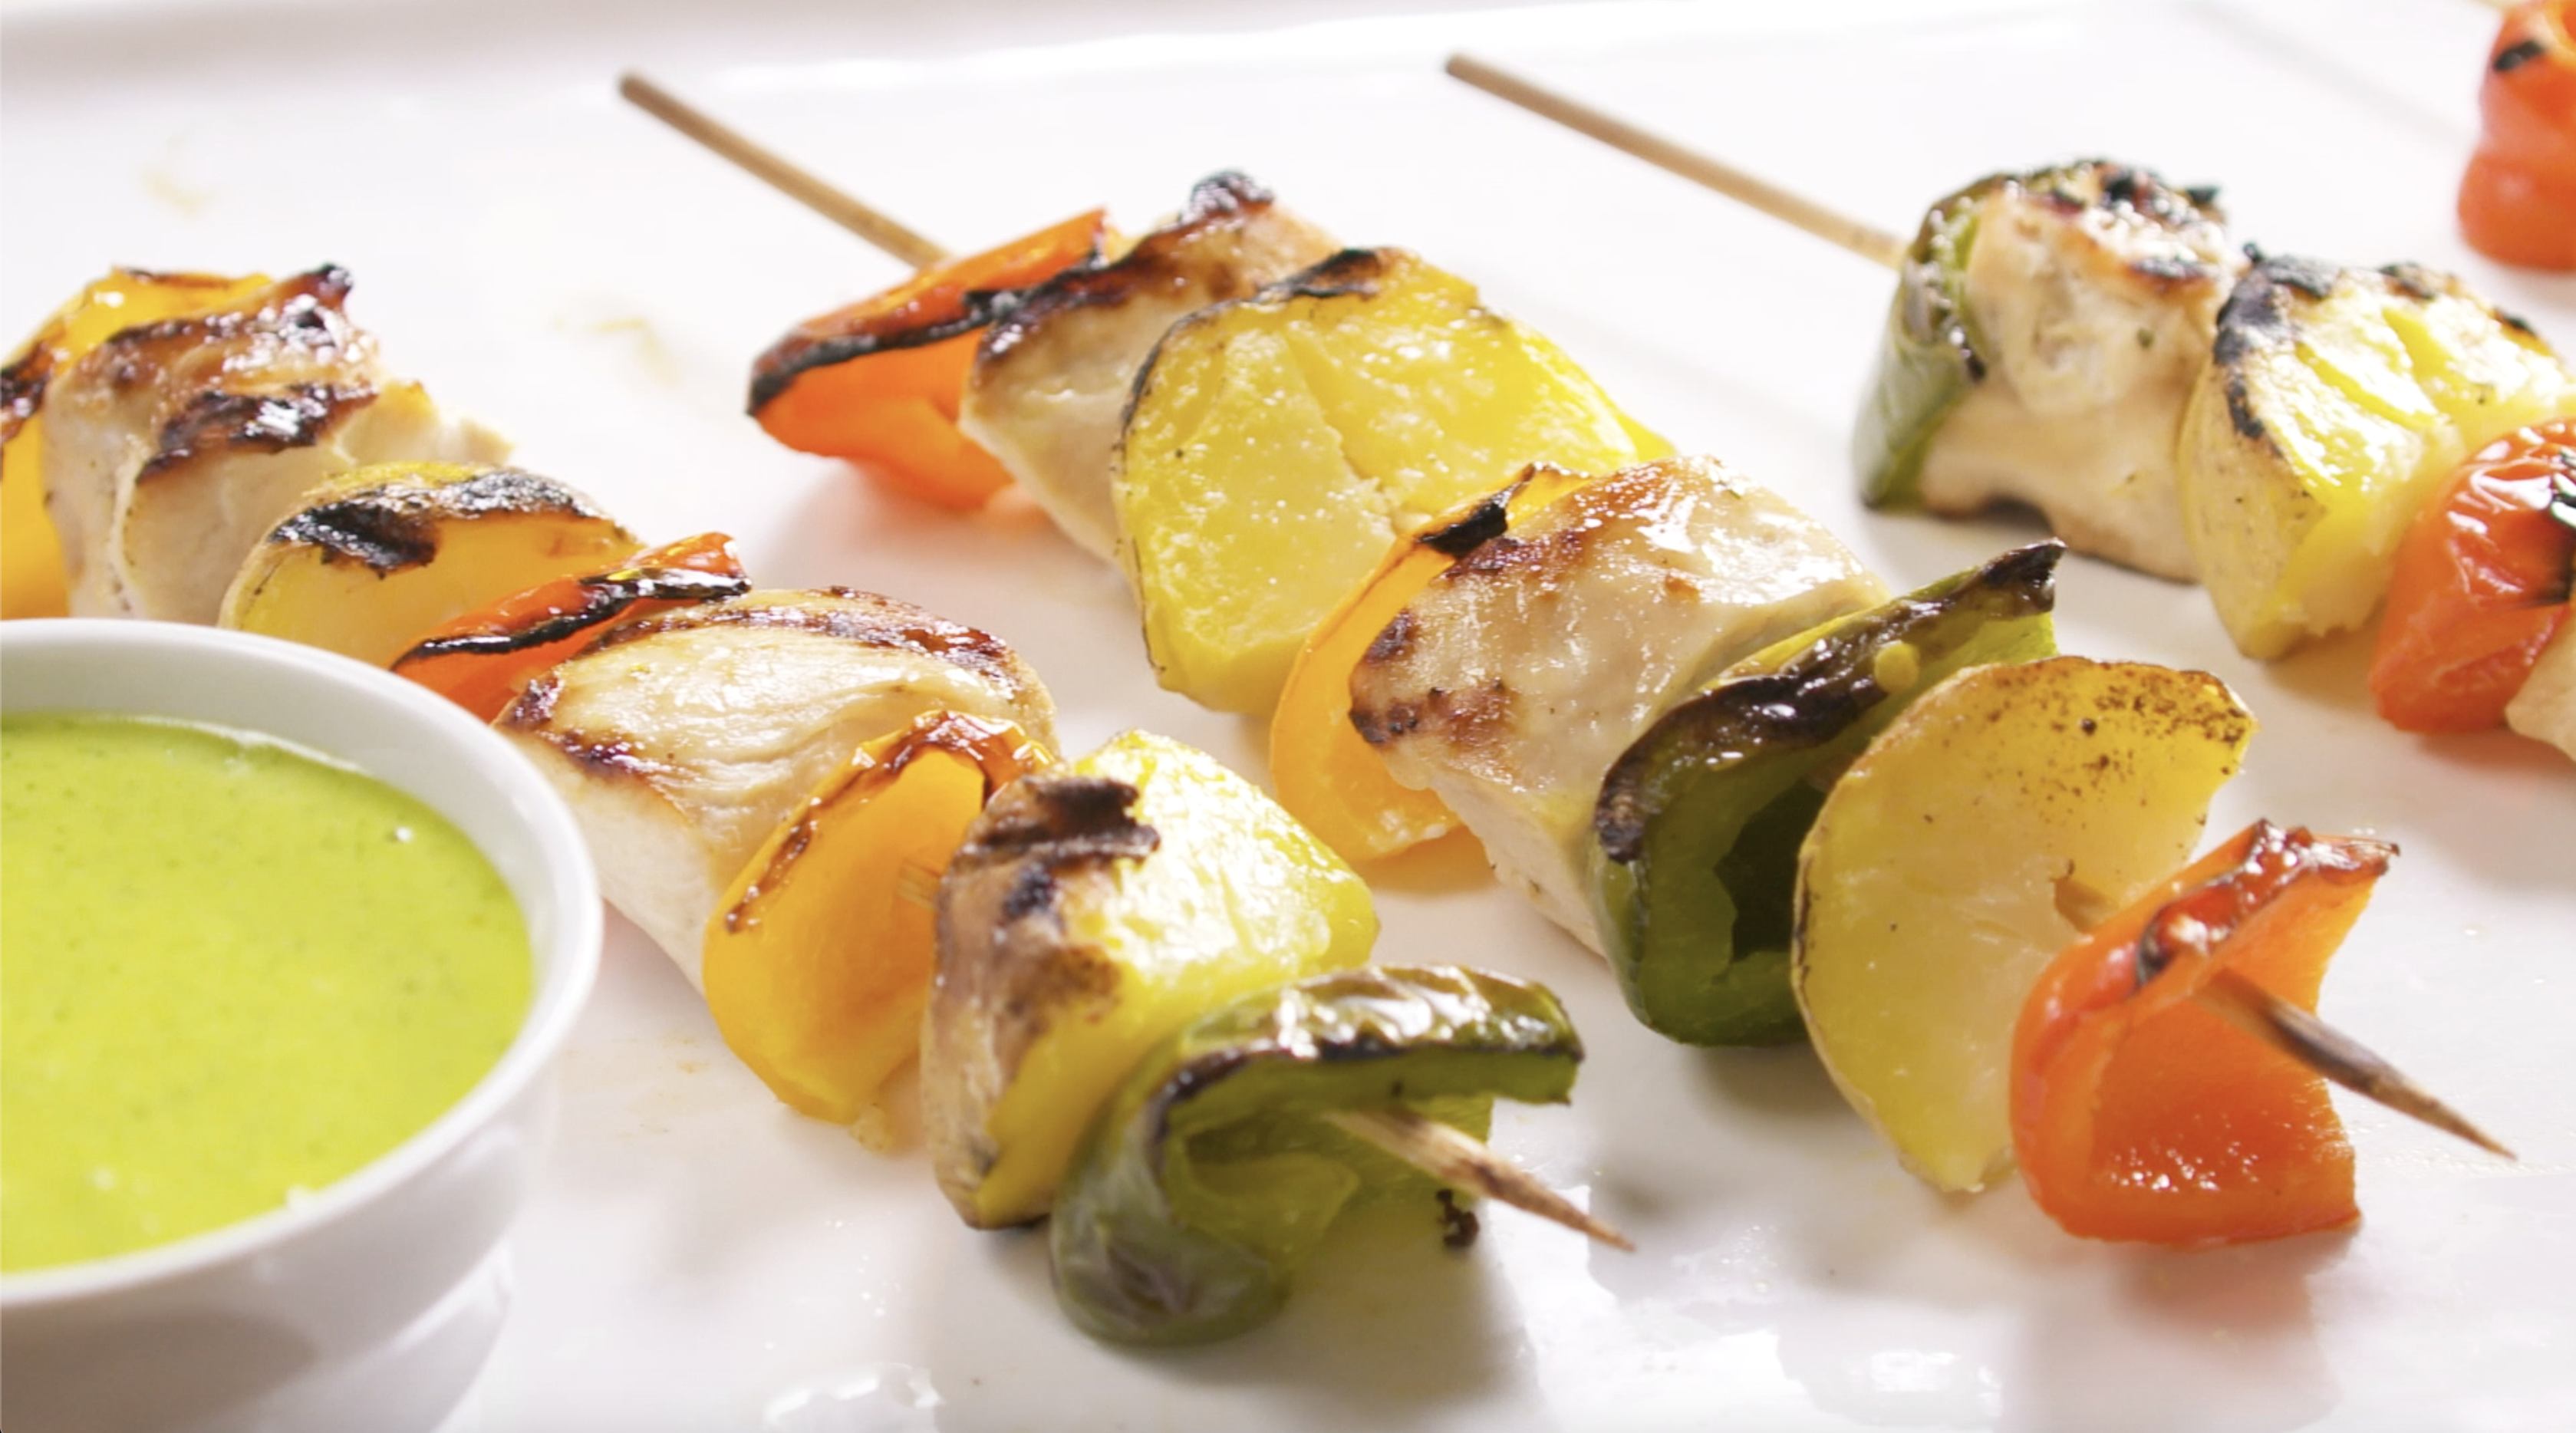 Beer and ranch chicken and potato kebabs with pesto aioli for dipping